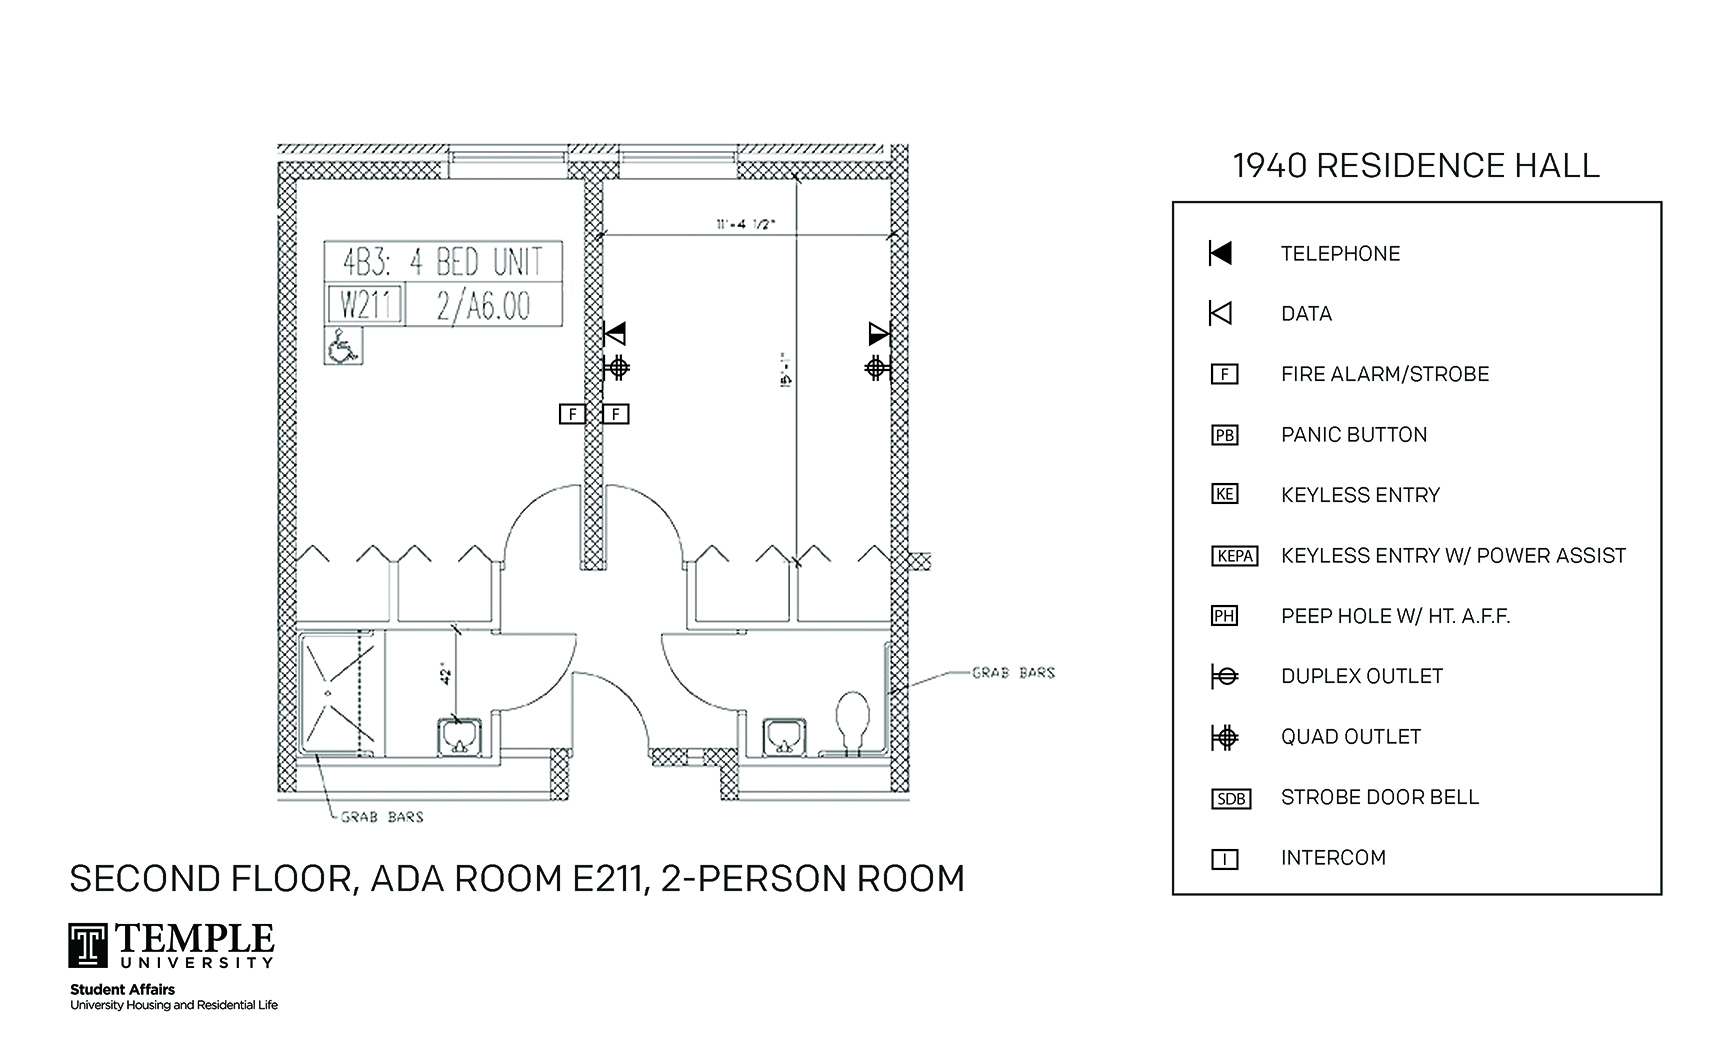 Accessible Room Diagrams: 4 person, 2 bedroom Suite - E211